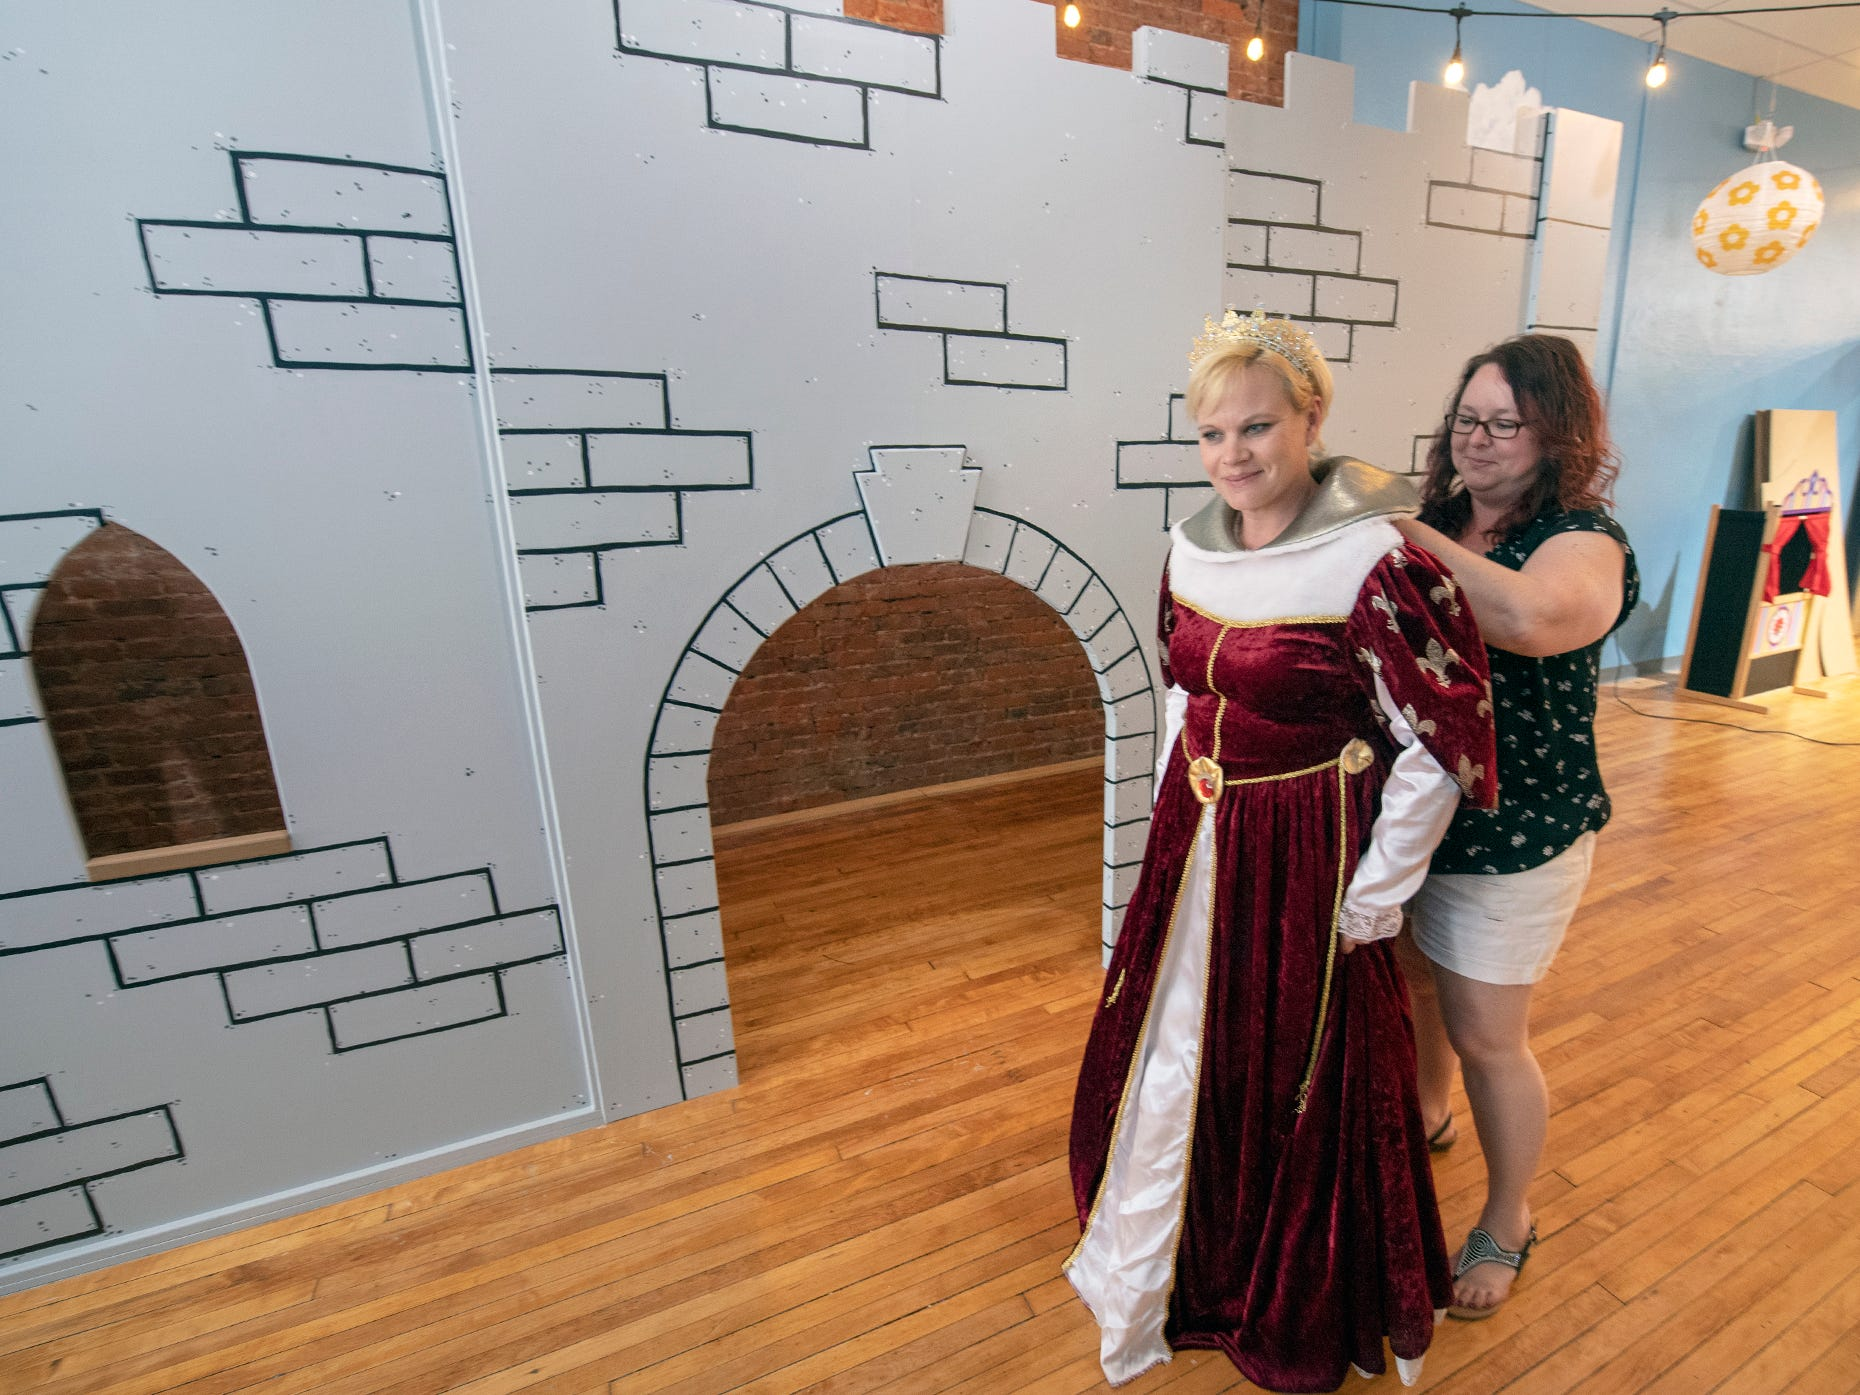 Owner Jen Swanner, right, helps manager Heidi Wildasin try on her queen costume at The Curious Little Playhouse in York.